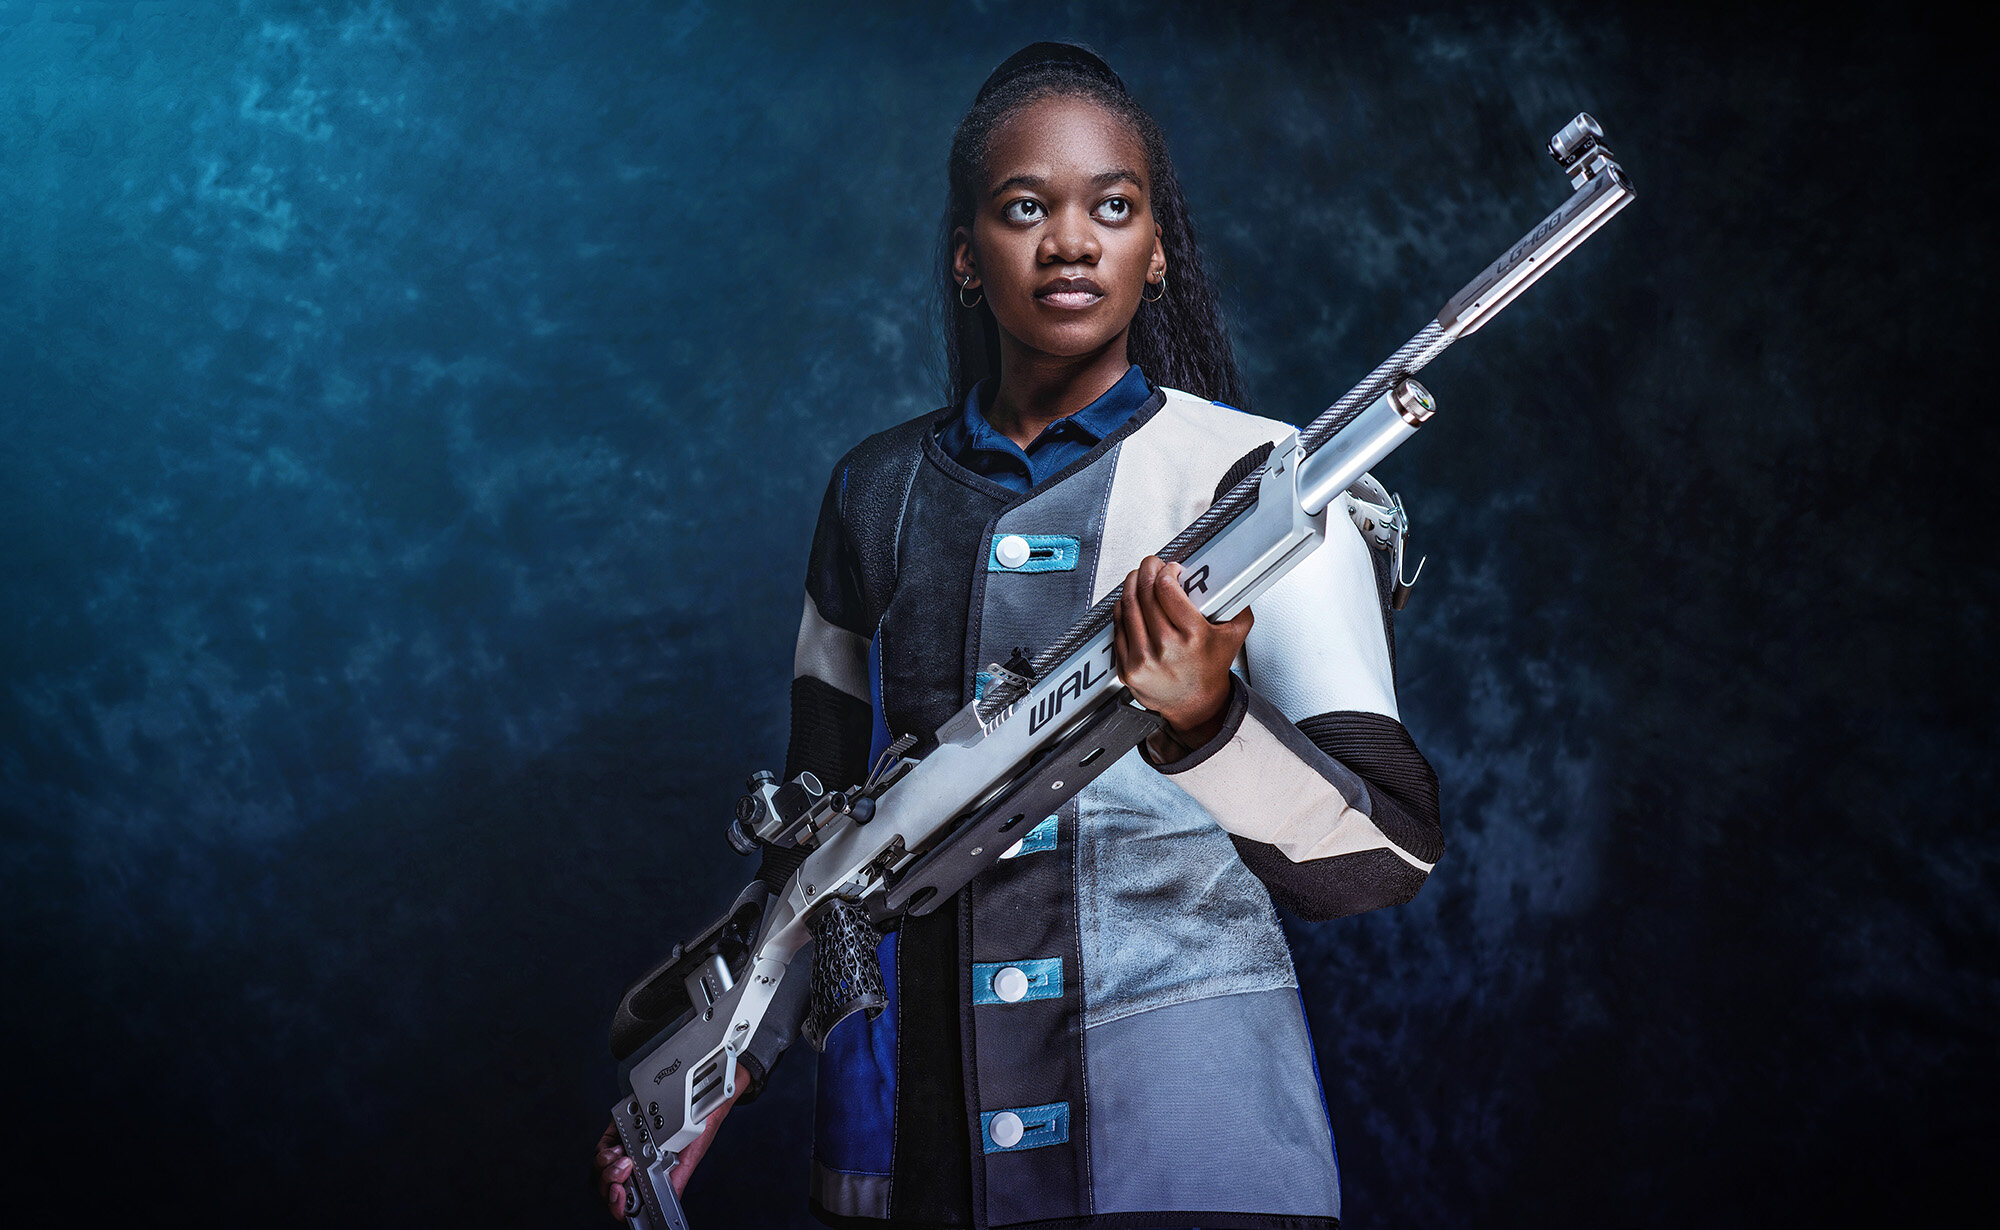 Champion target shooter aims to inspire more black athletes to take up the sport